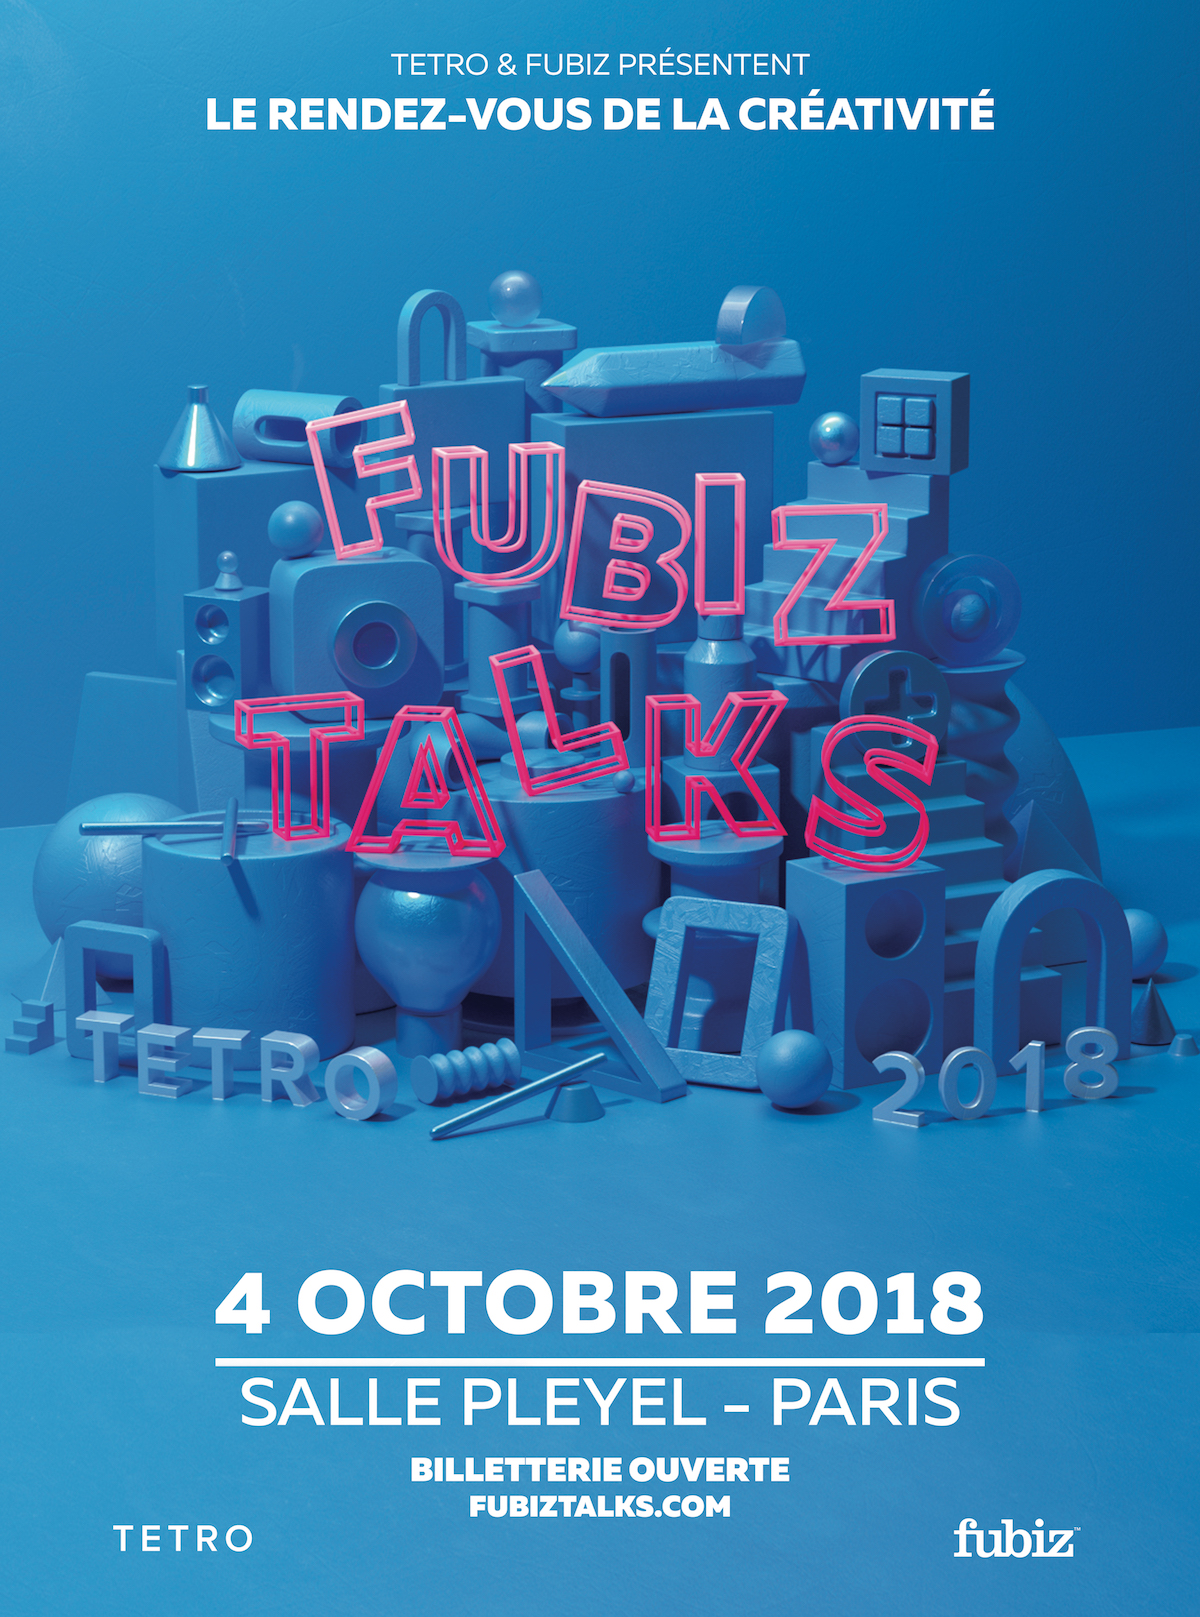 Early Birds Tickets for the Fubiz Talks 2018